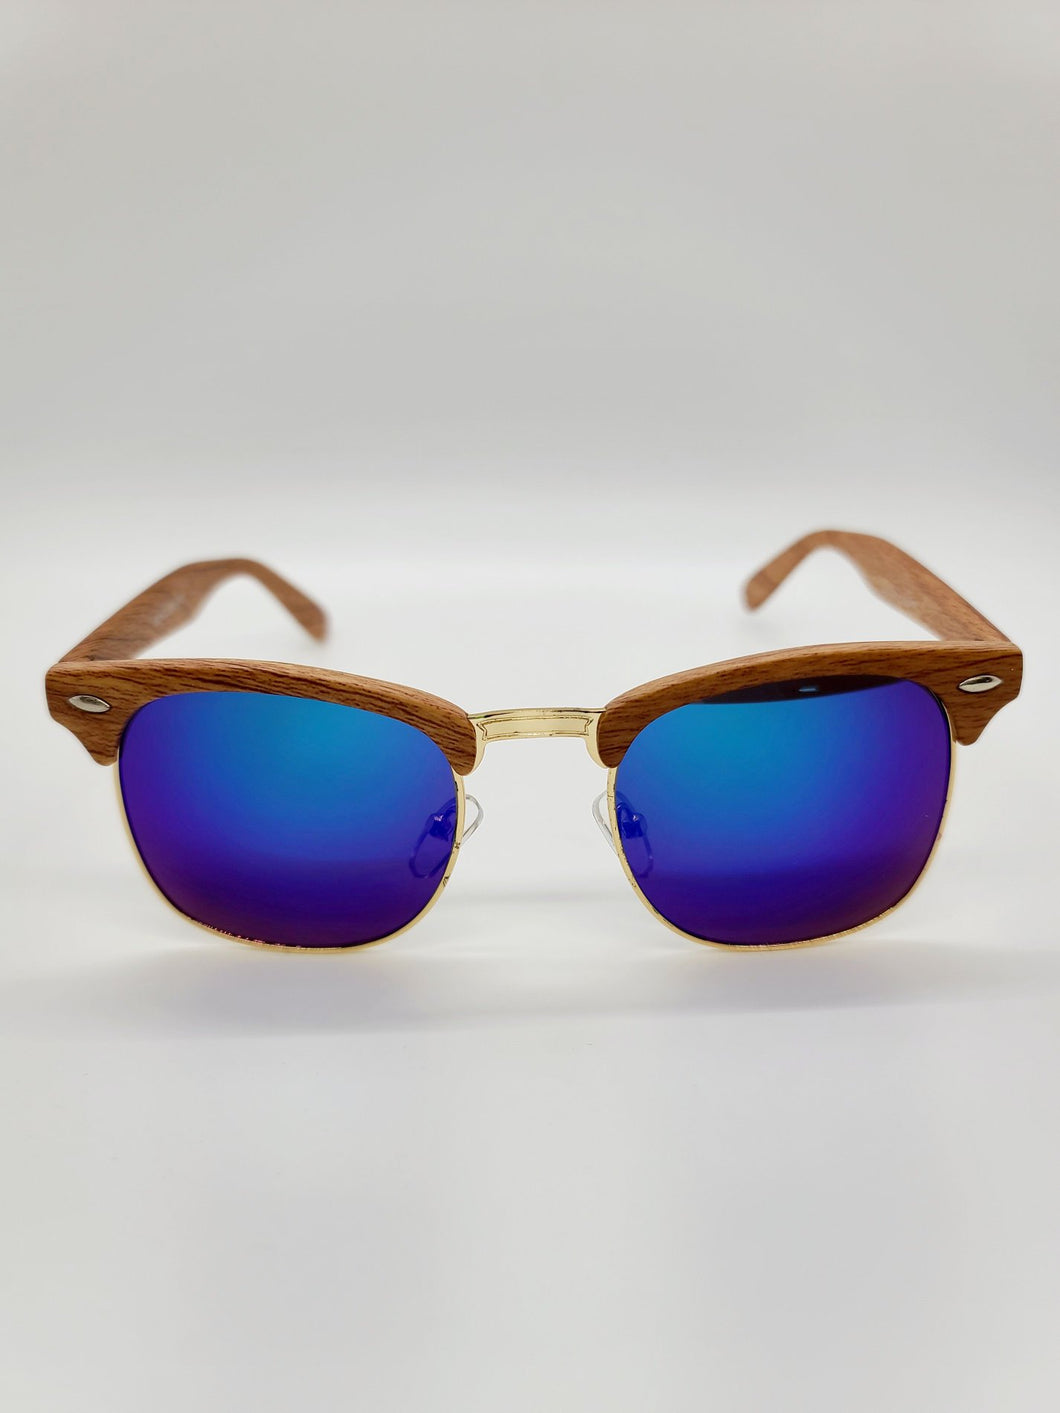 Aviator style sunglasses with wood pattern frames and blue/purple lenses